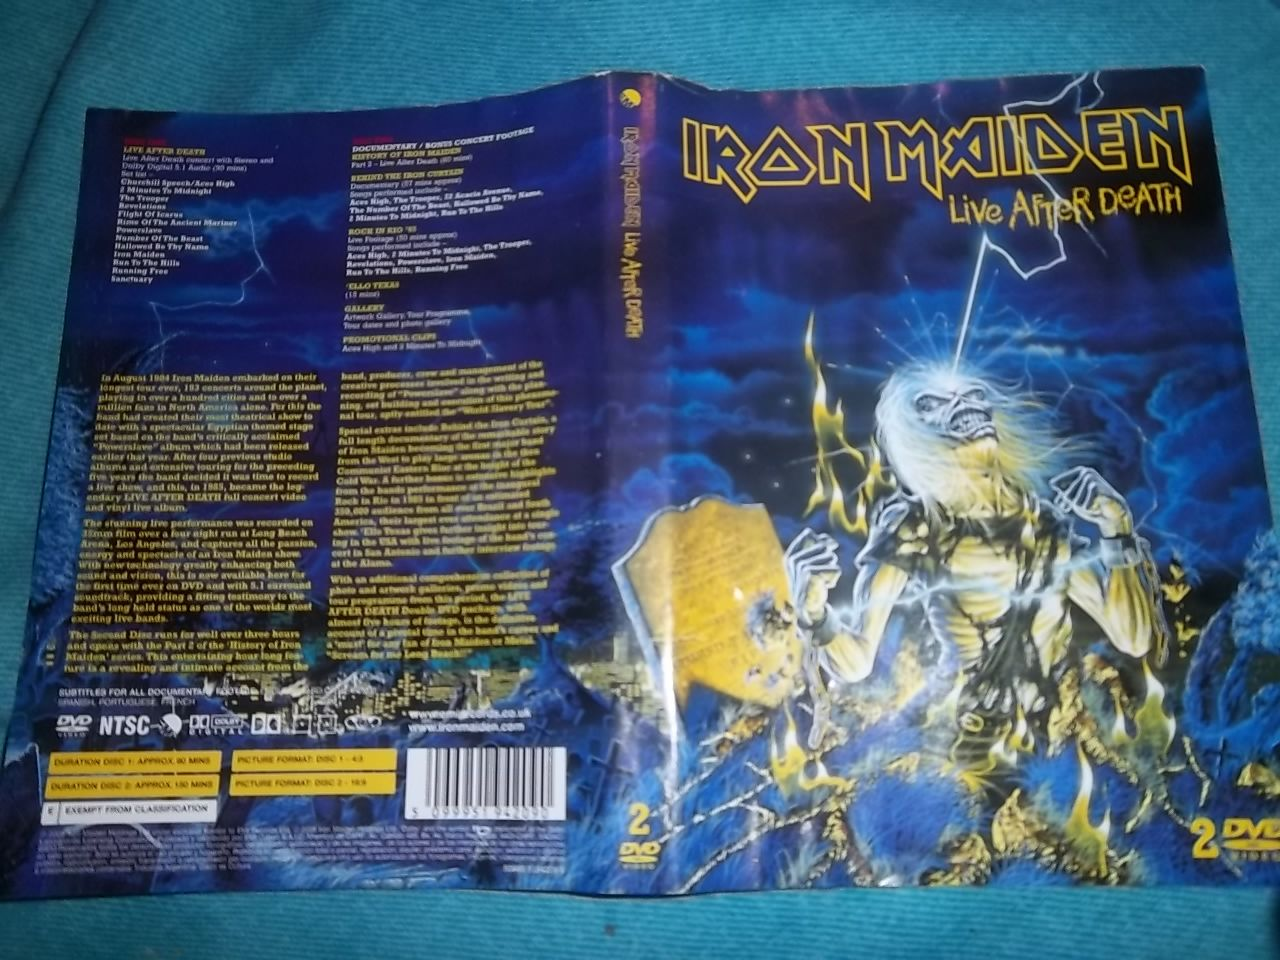 El Arte de Iron Maiden (live after death) fotos mias!